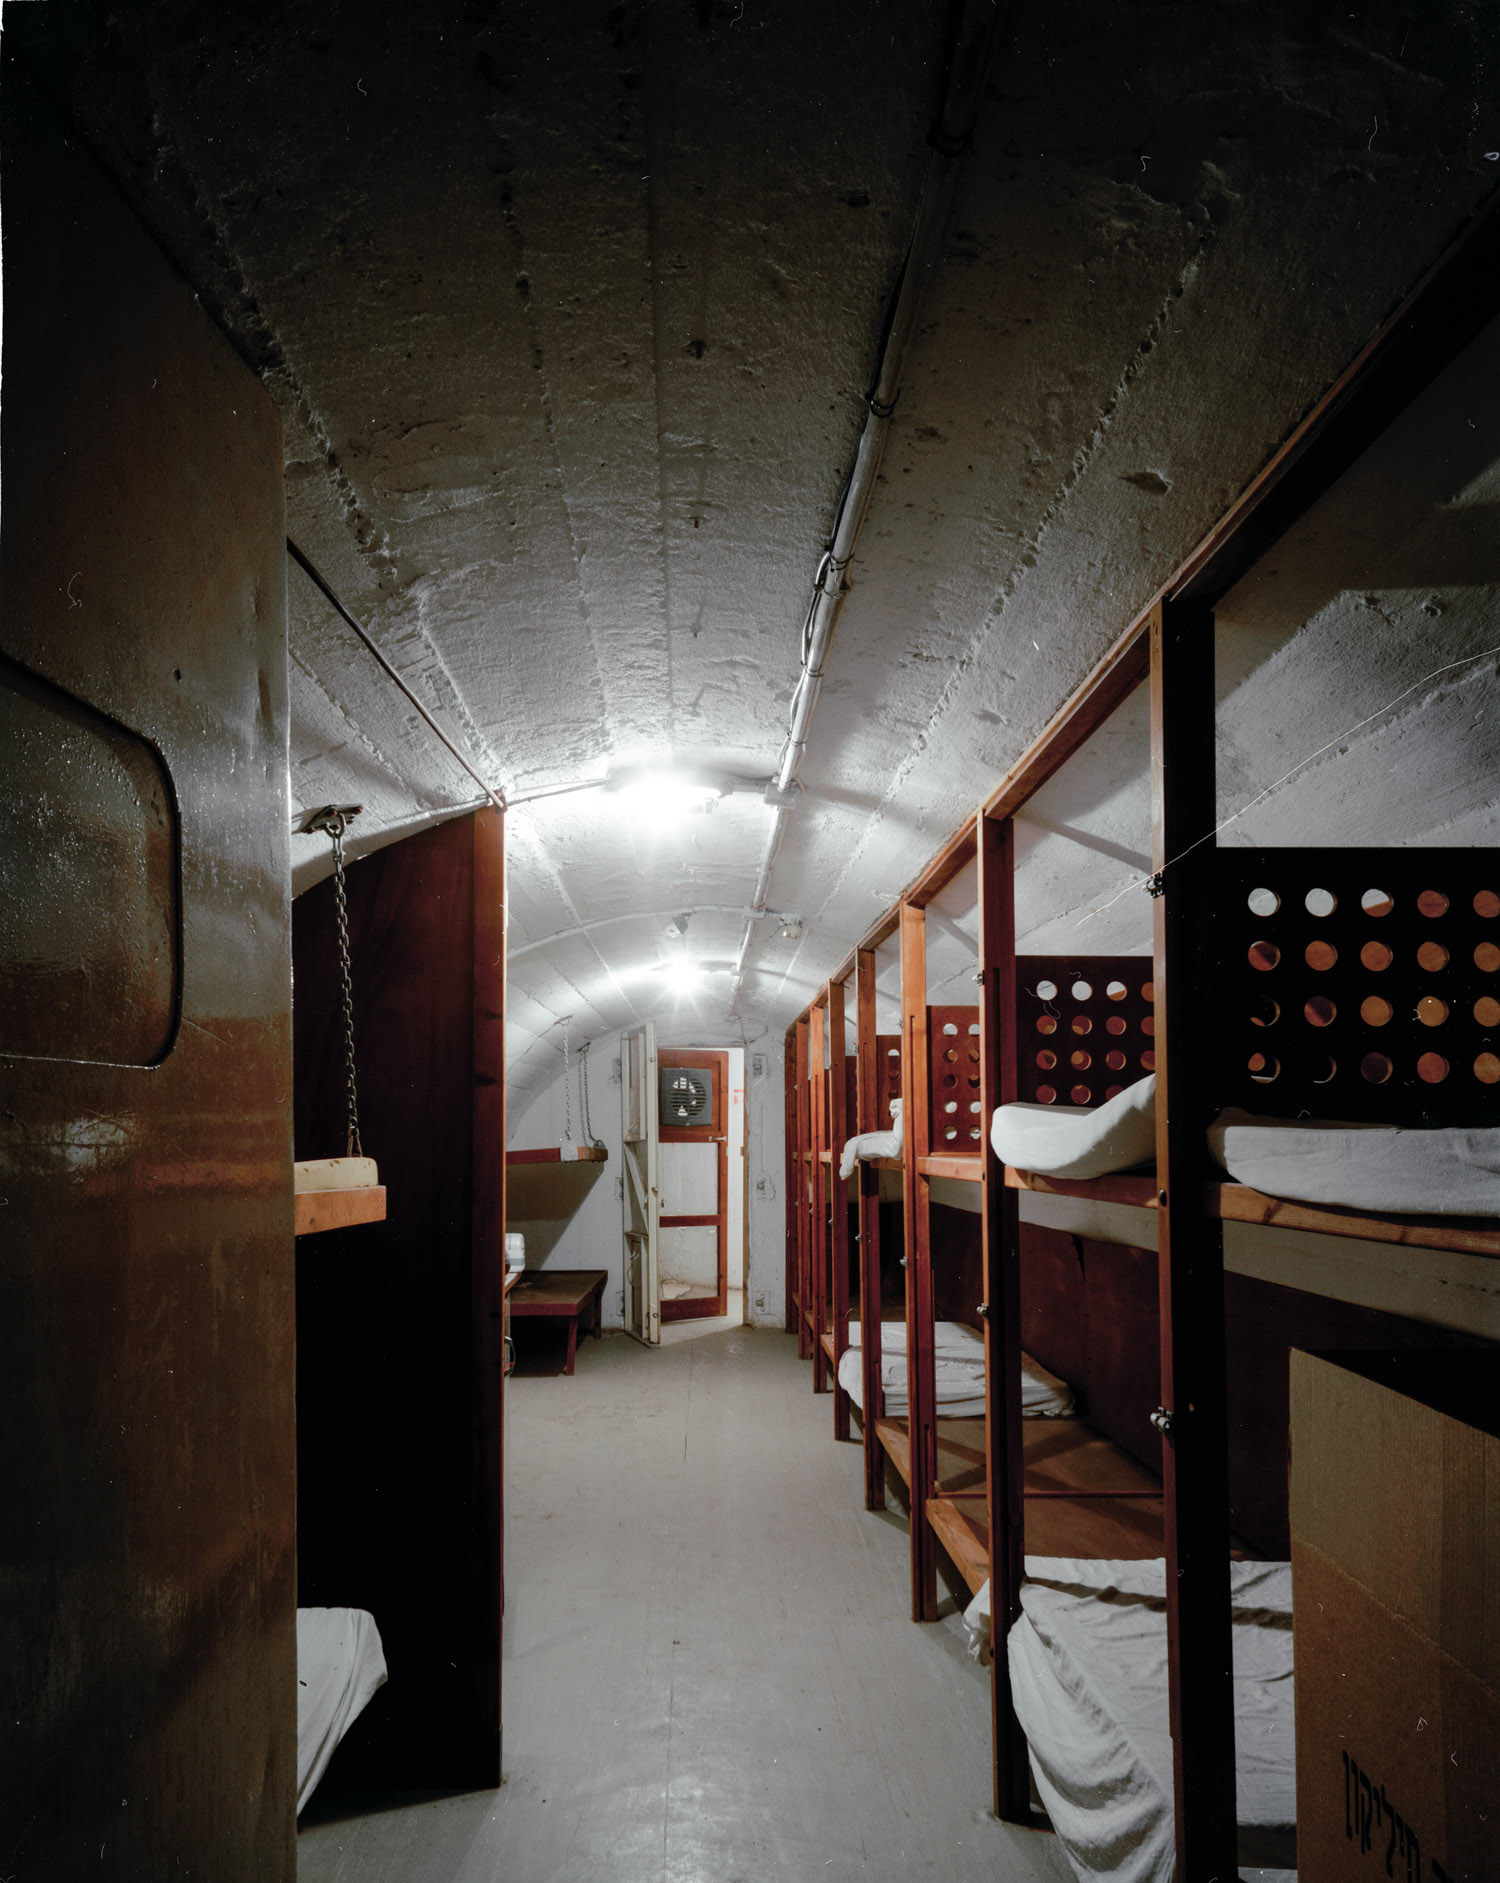 "Bunk Beds, Kibbutz Deganya Bet, Northern Israel,  2007, Chromogenic print, 30"" x 20"""